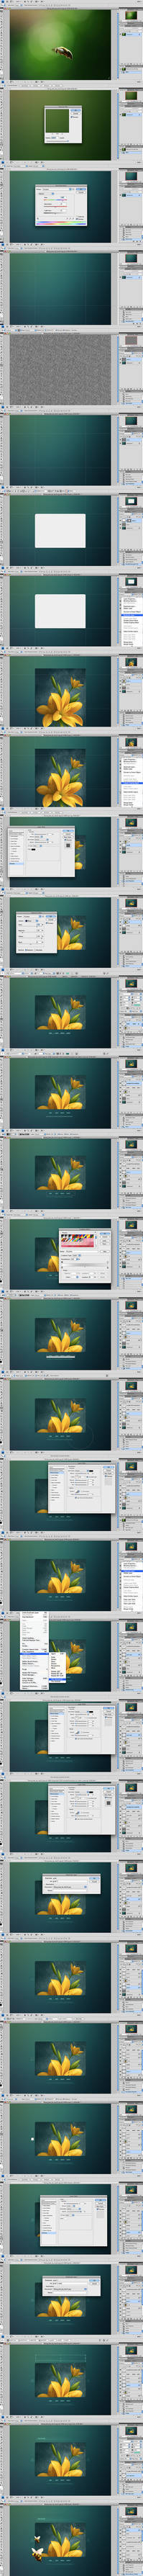 Photoshop Web Layout Tutorial